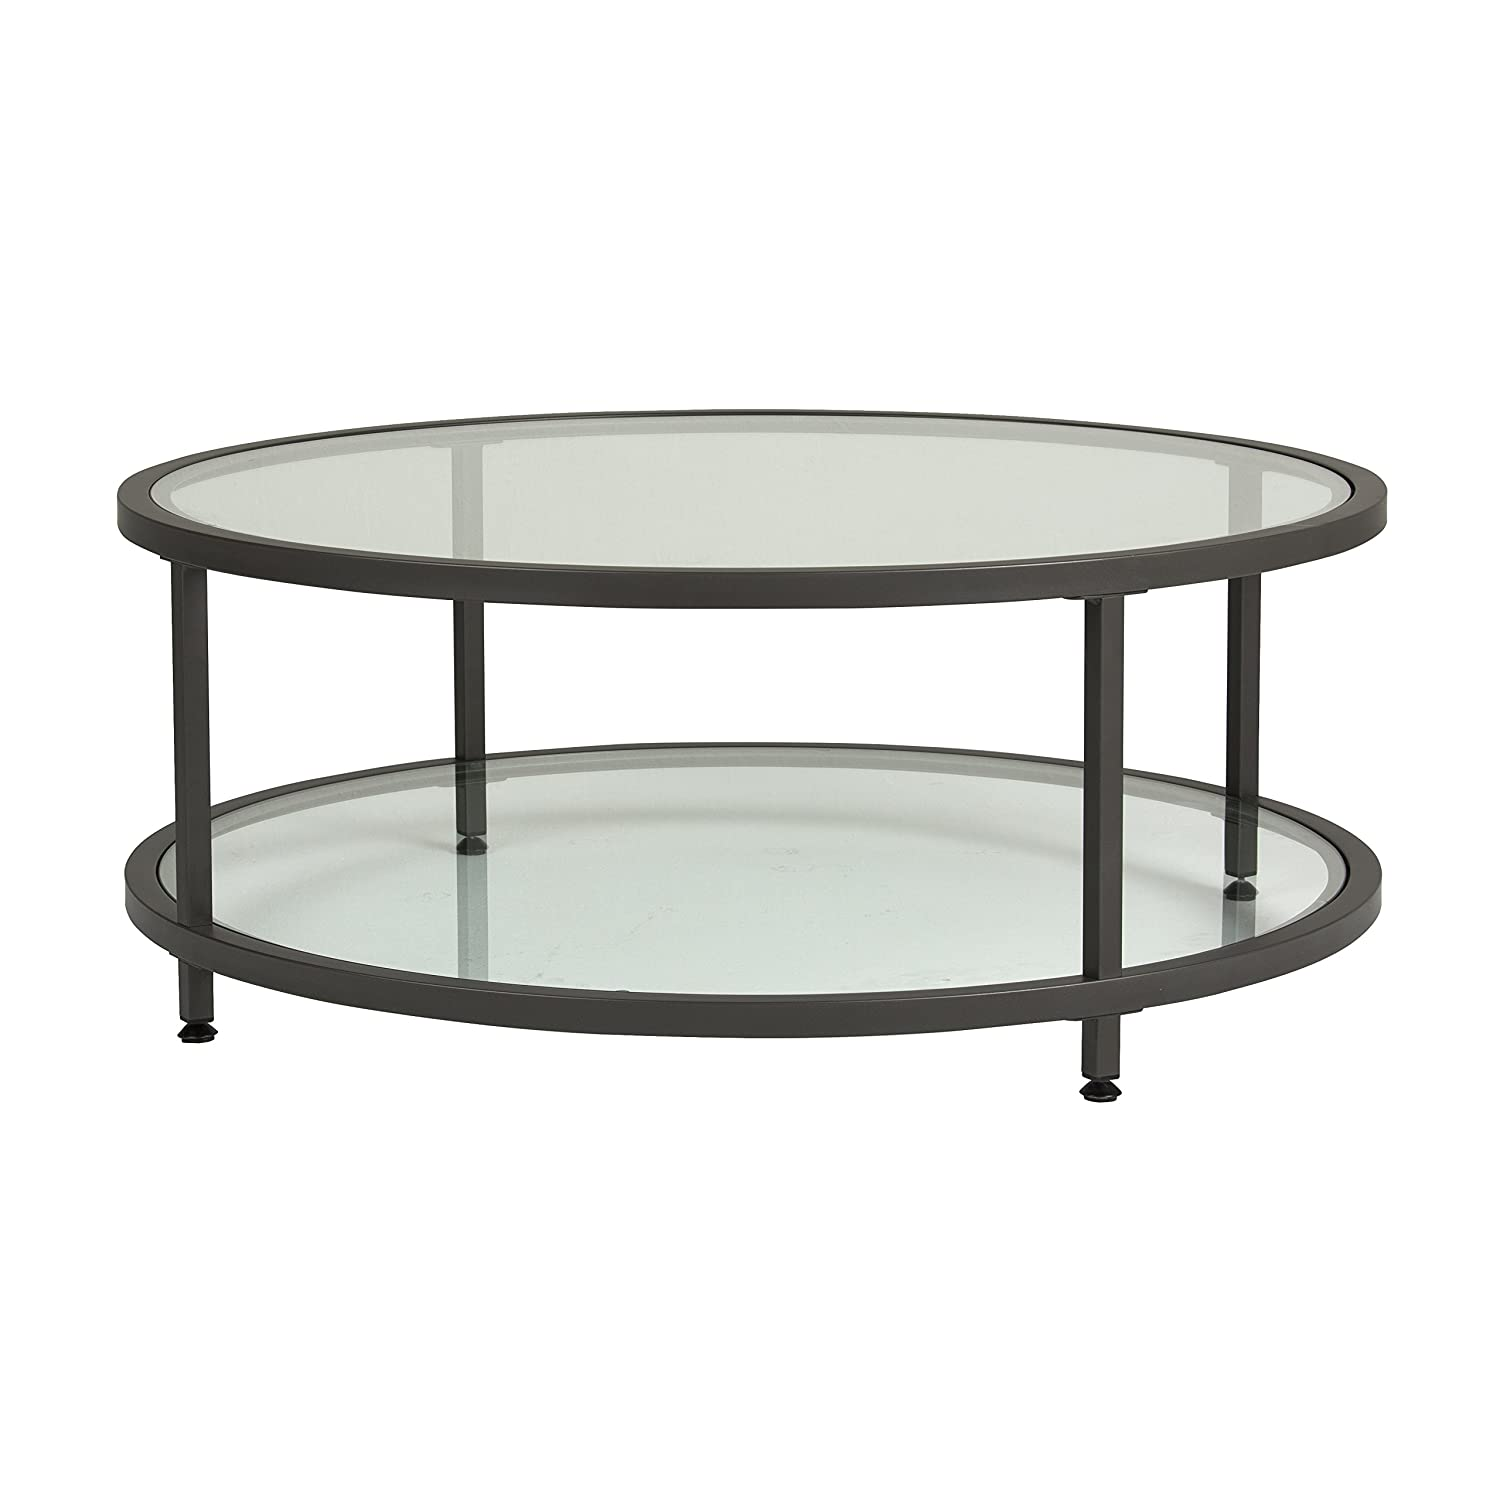 store round strand buy kitchen tables table dining glass